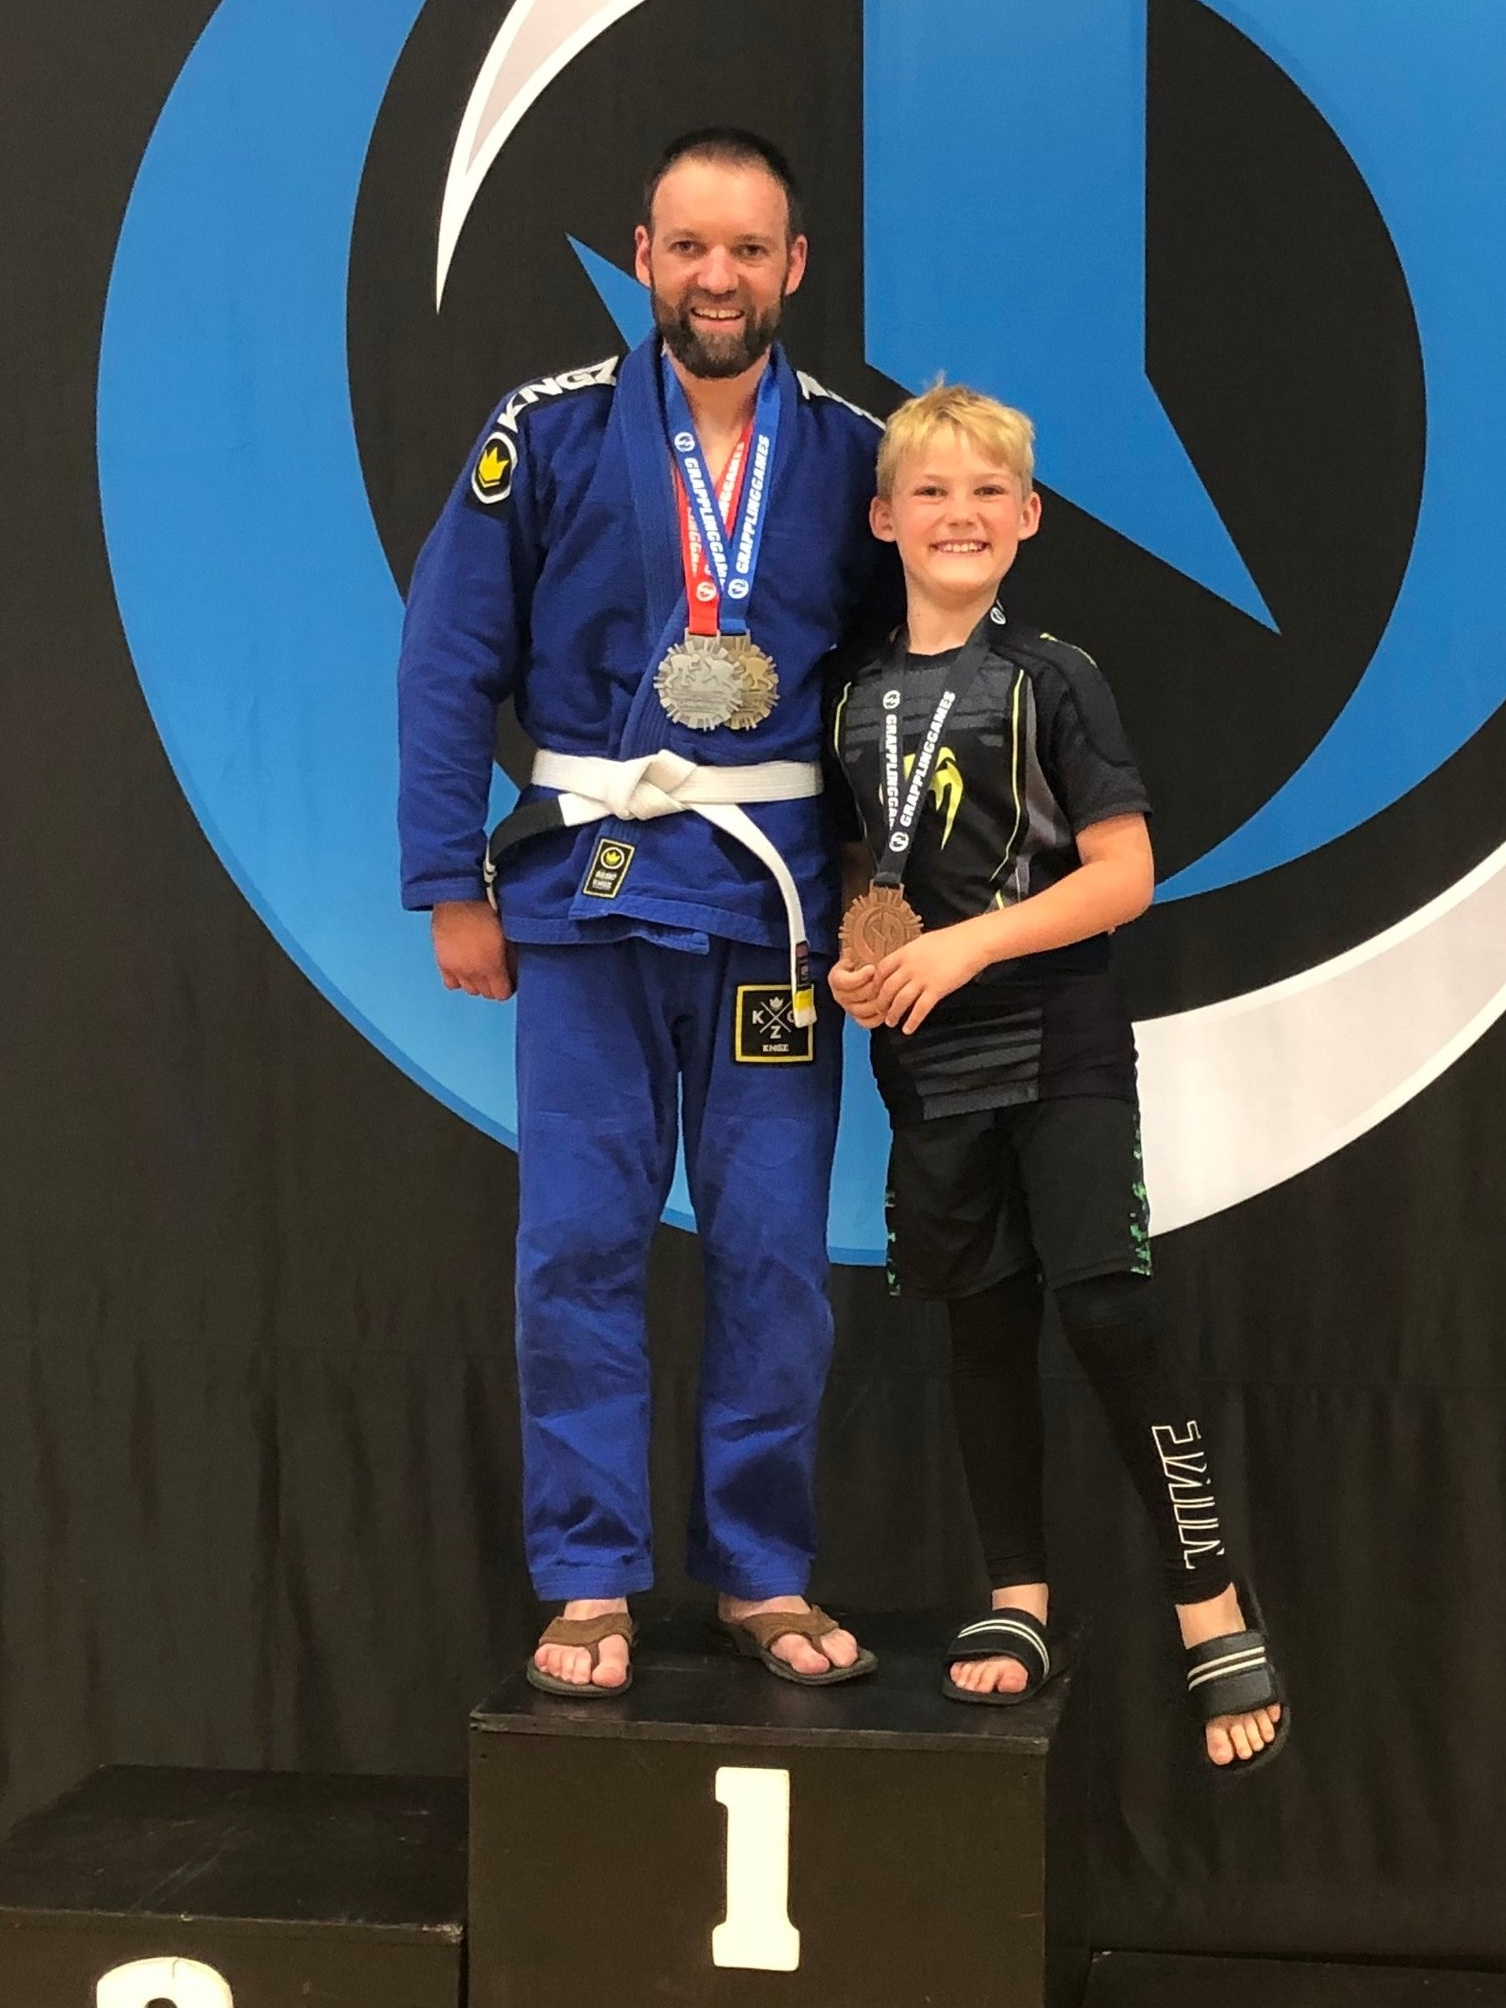 Father (Ron Wiza) and son (Cooper Wiza) both competed at the Grappling Games tournament held on June 22, 2019 in Oak Lawn, IL and each came home with medals. Ron Wiza received a silver medal after competing against someone more than half his age in the adult division.